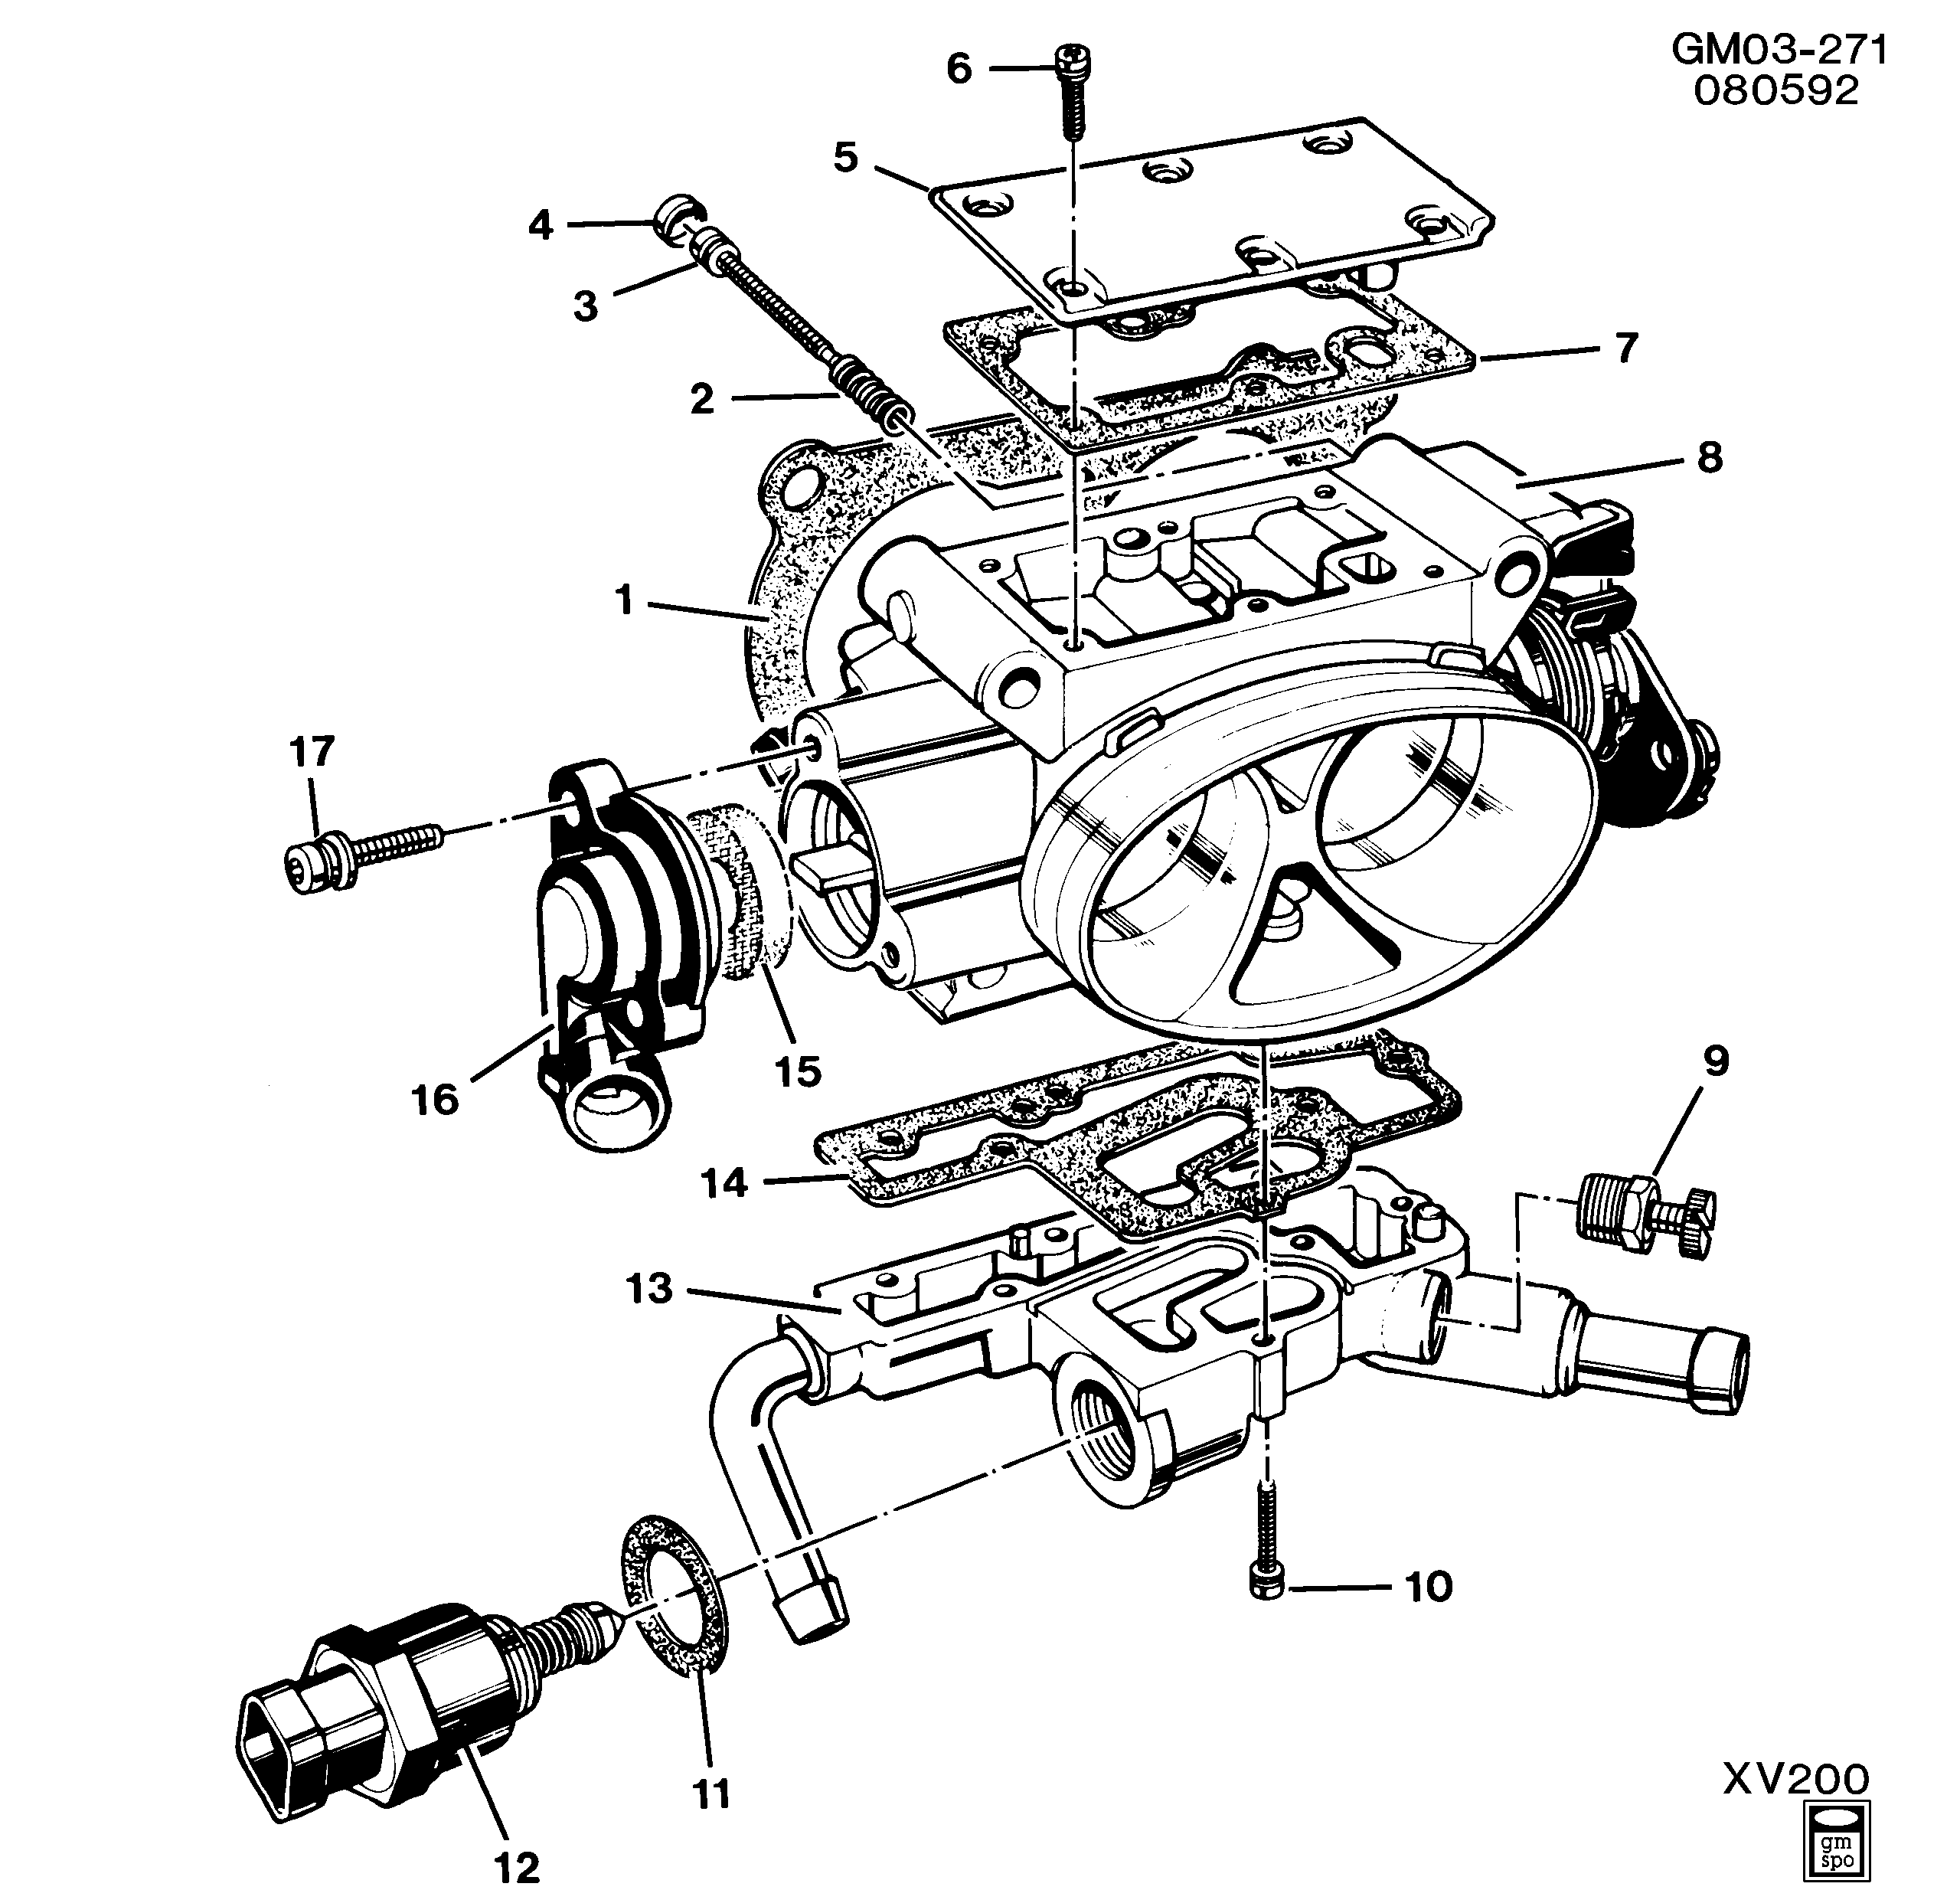 Pontiac Firebird Lt1 Engine Diagram - Wiring Diagram